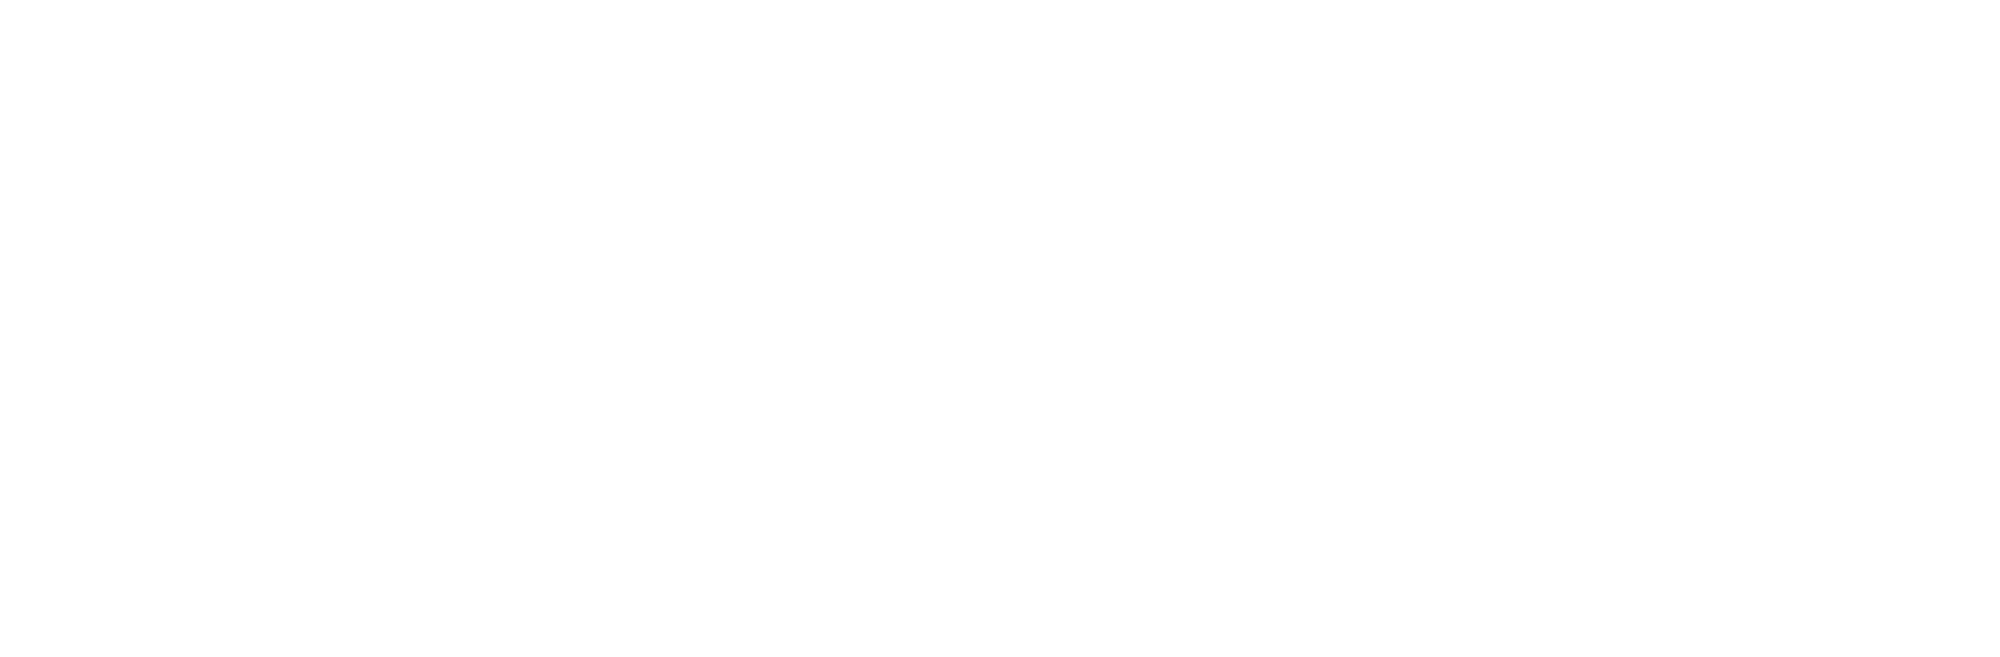 Revealio software and media solutions logo white